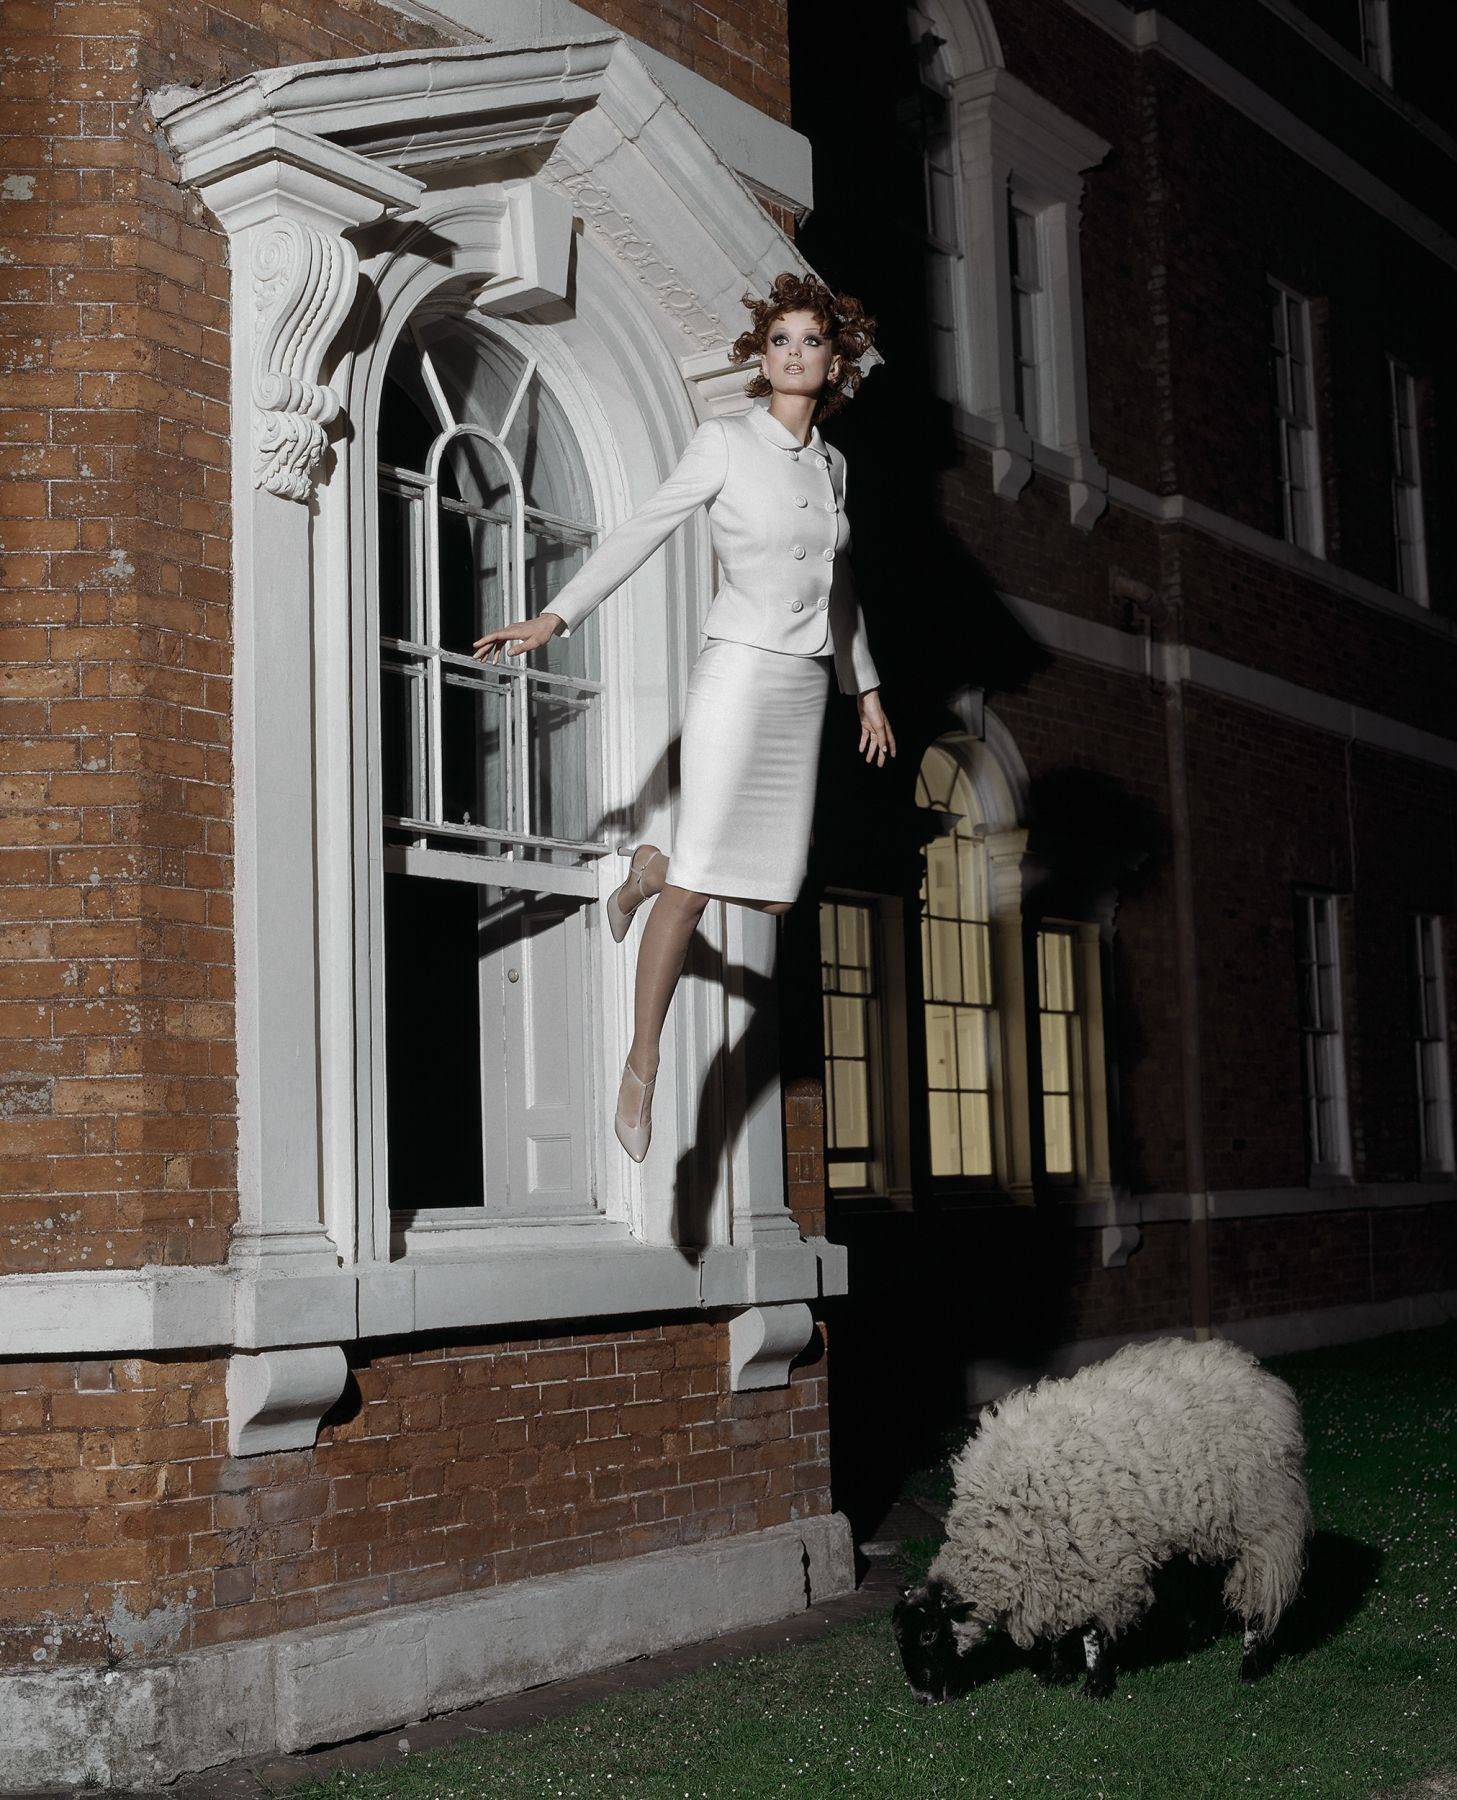 Model Flying From Window, England, 1995, Archival Pigment Print